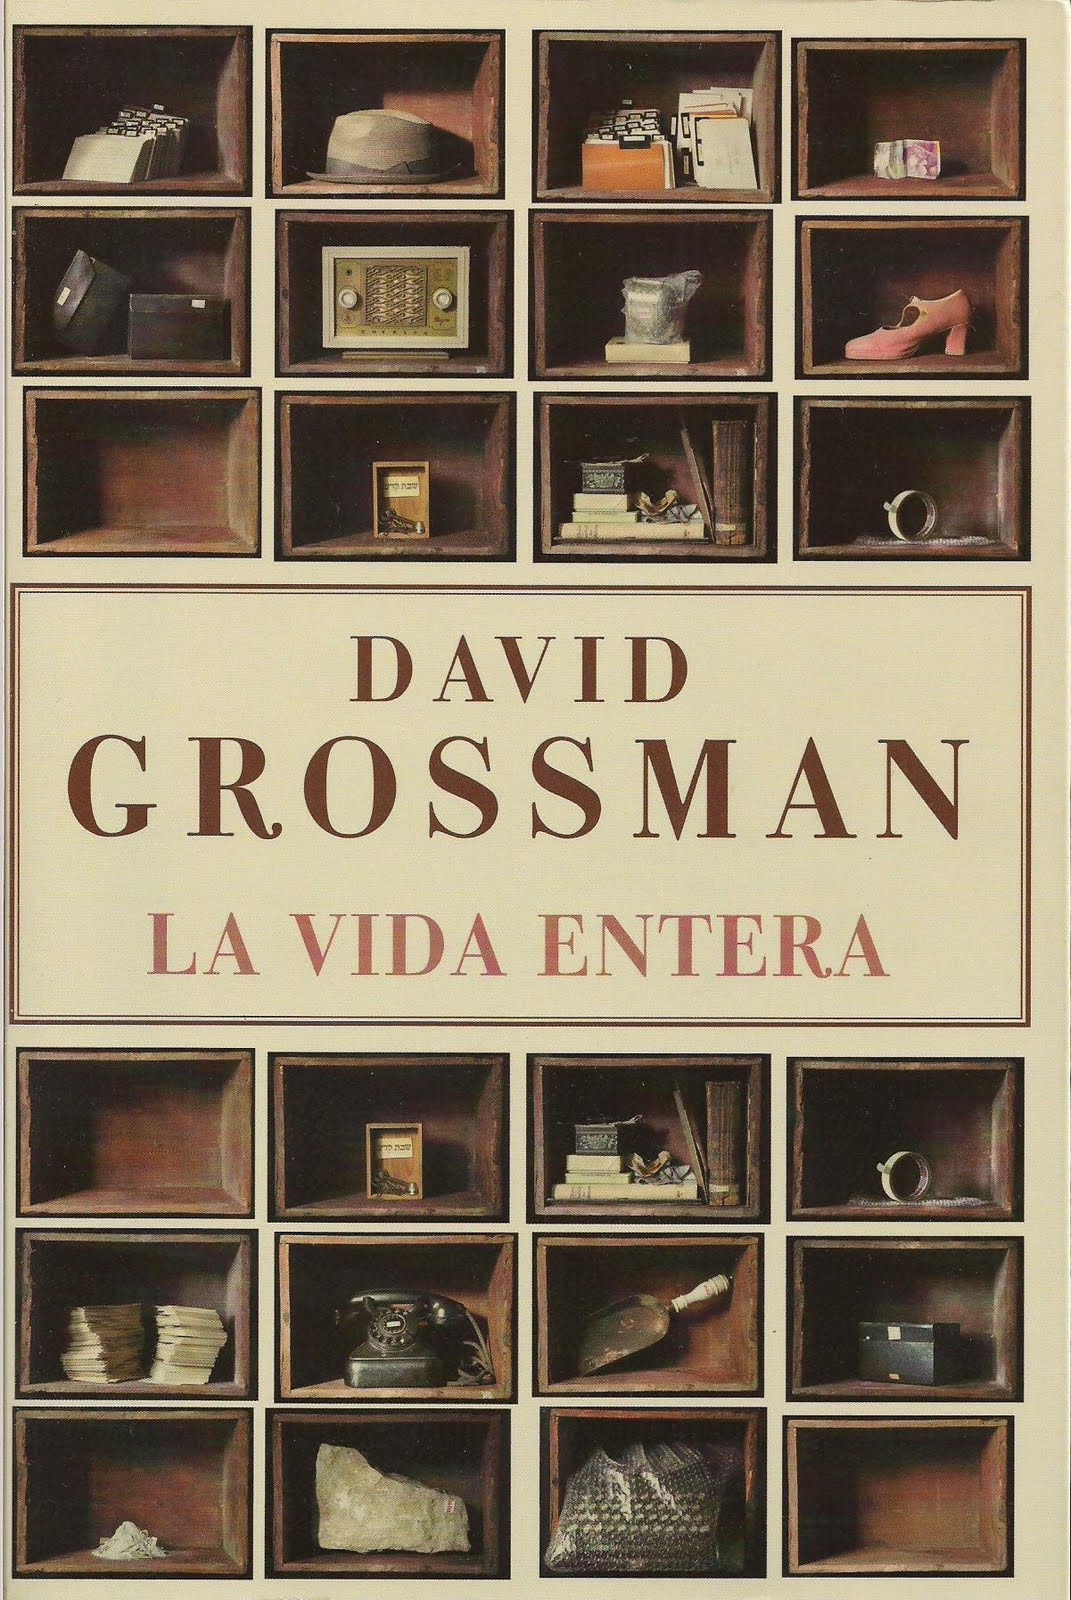 El niño vampiro lee: La vida entera, de David Grossman